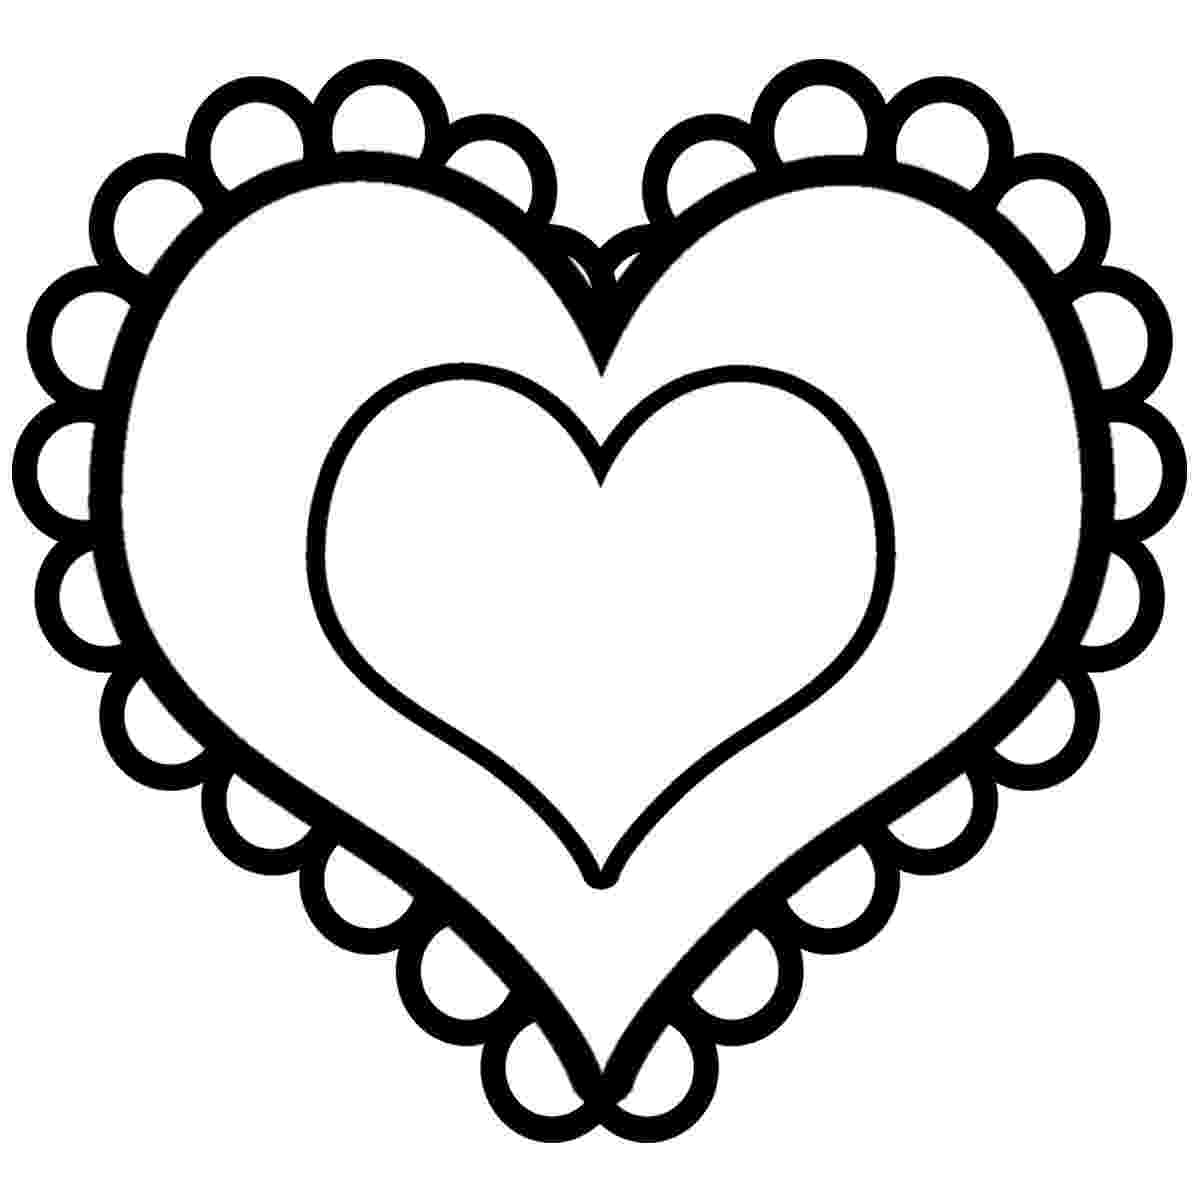 coloring pages heart free printable heart coloring pages for kids coloring pages heart